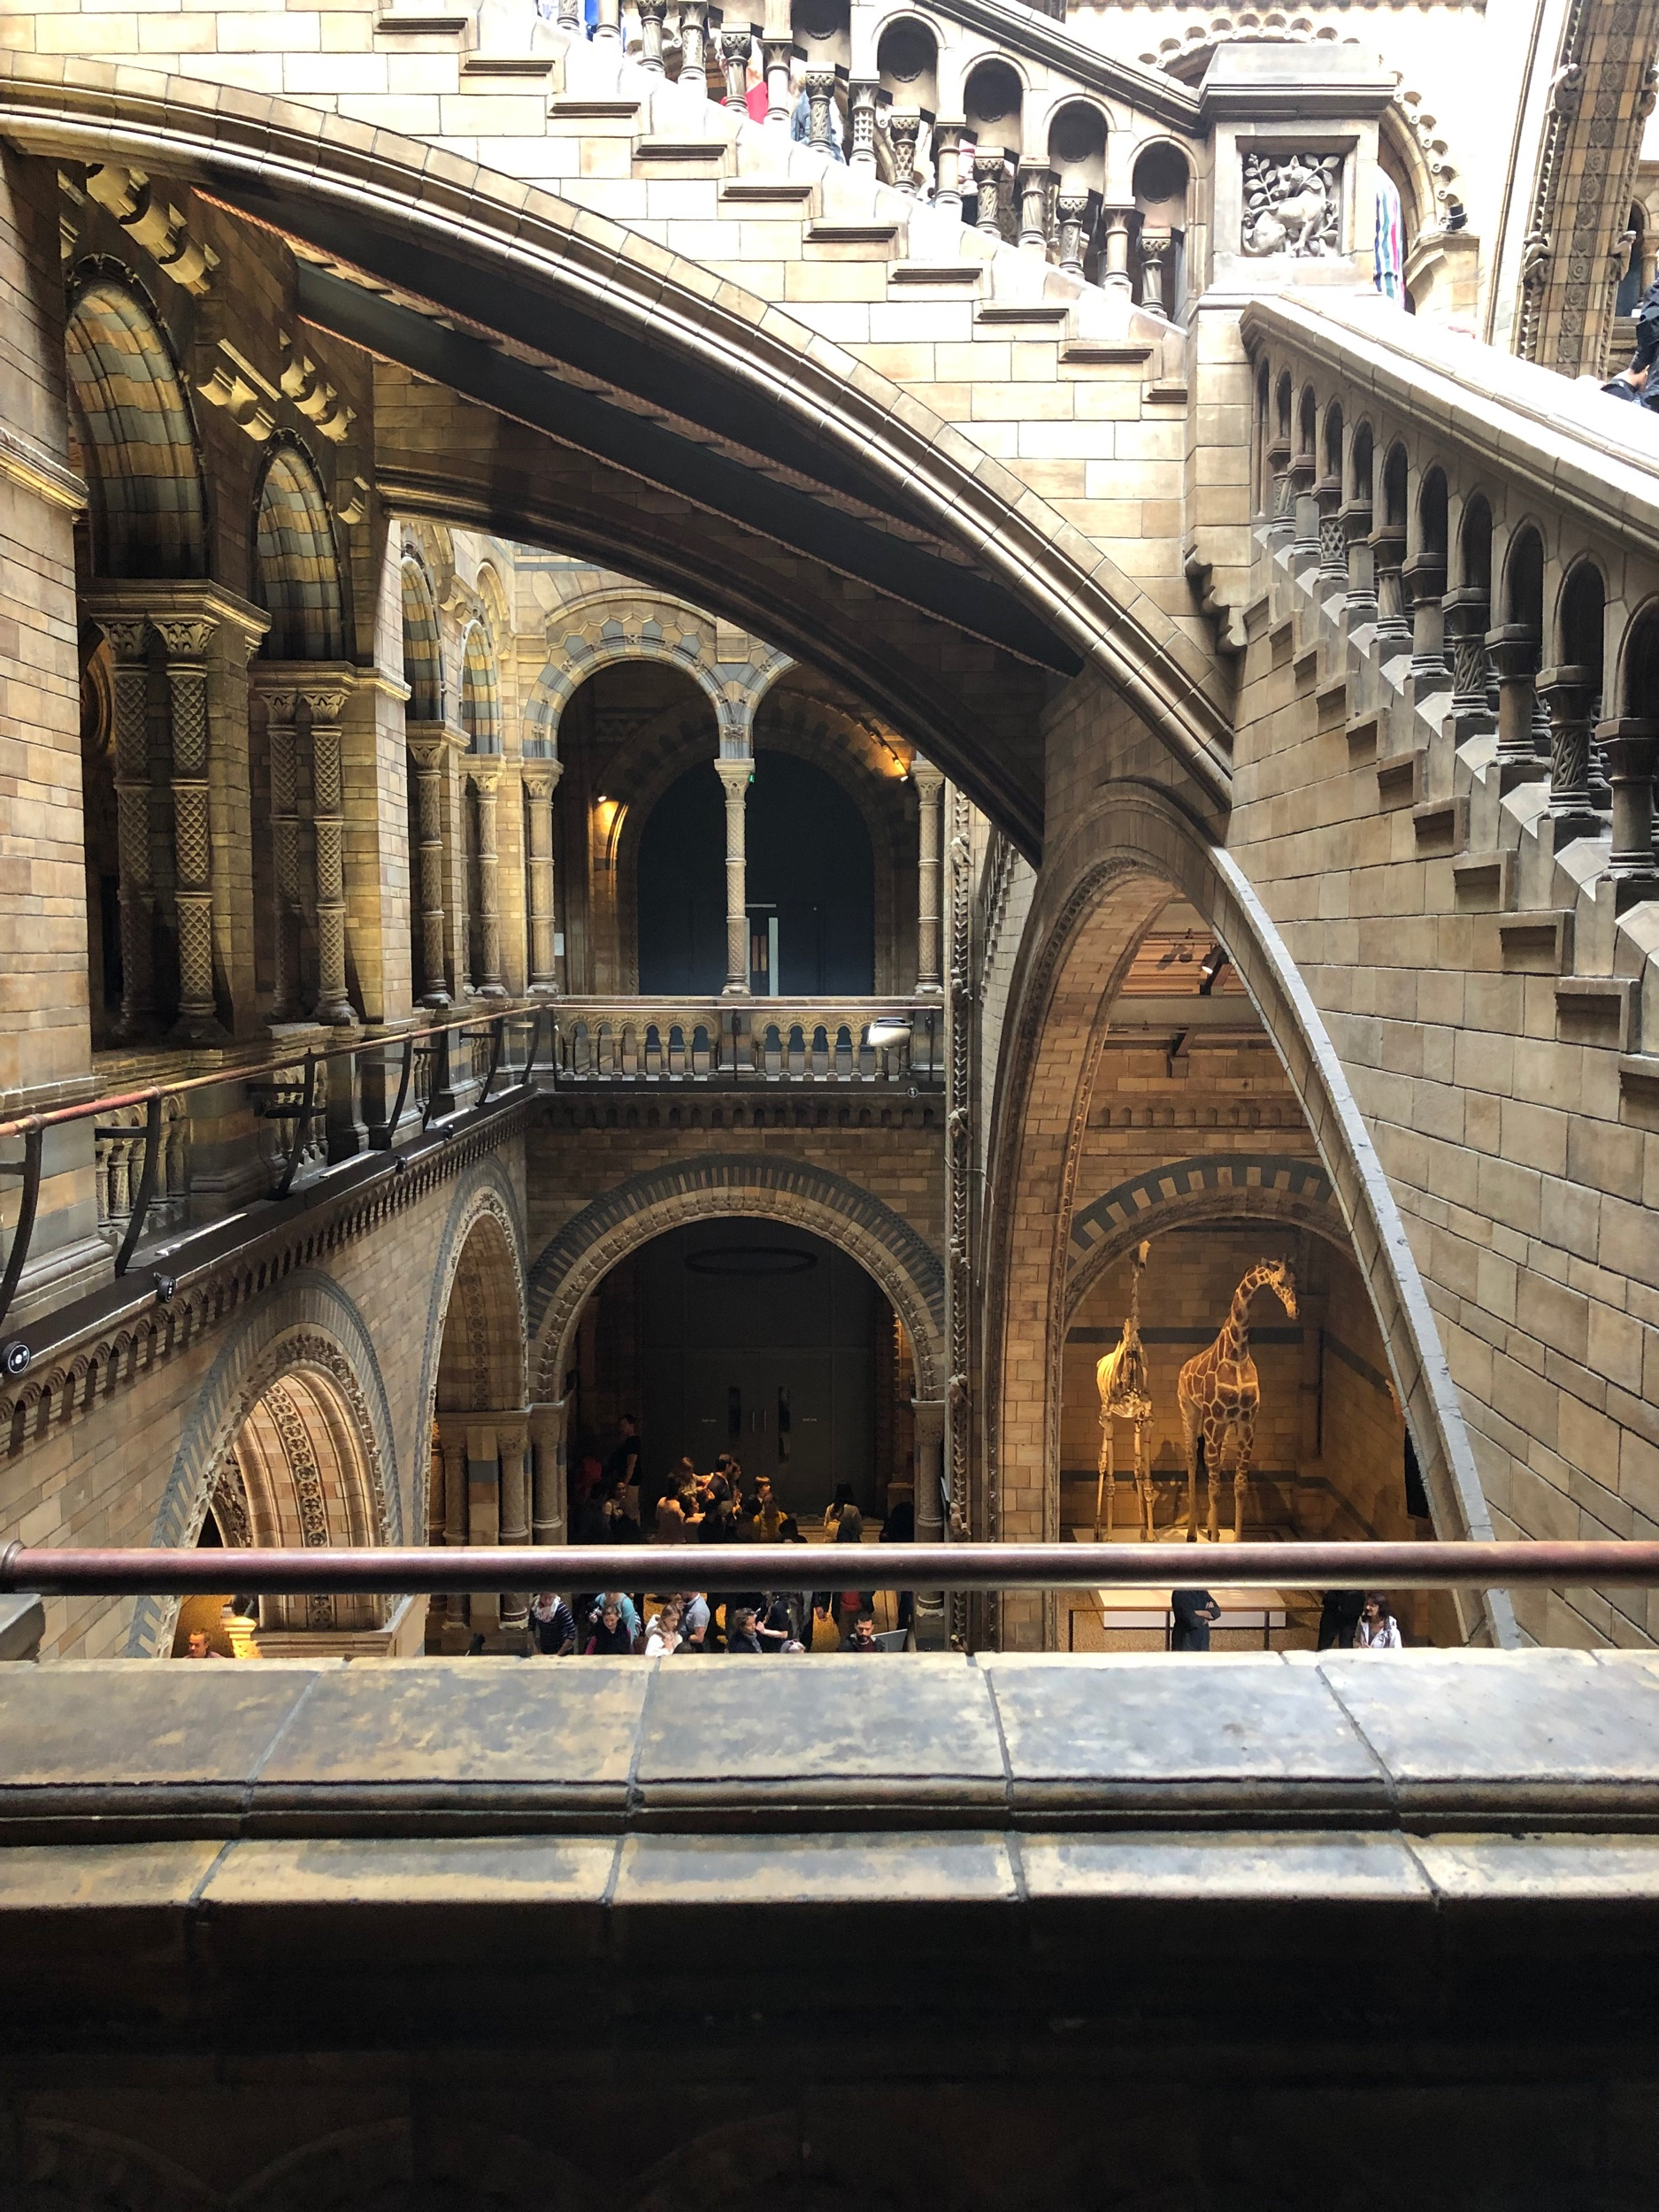 Parts of the museum look more like Hogwarts than Hogwarts!